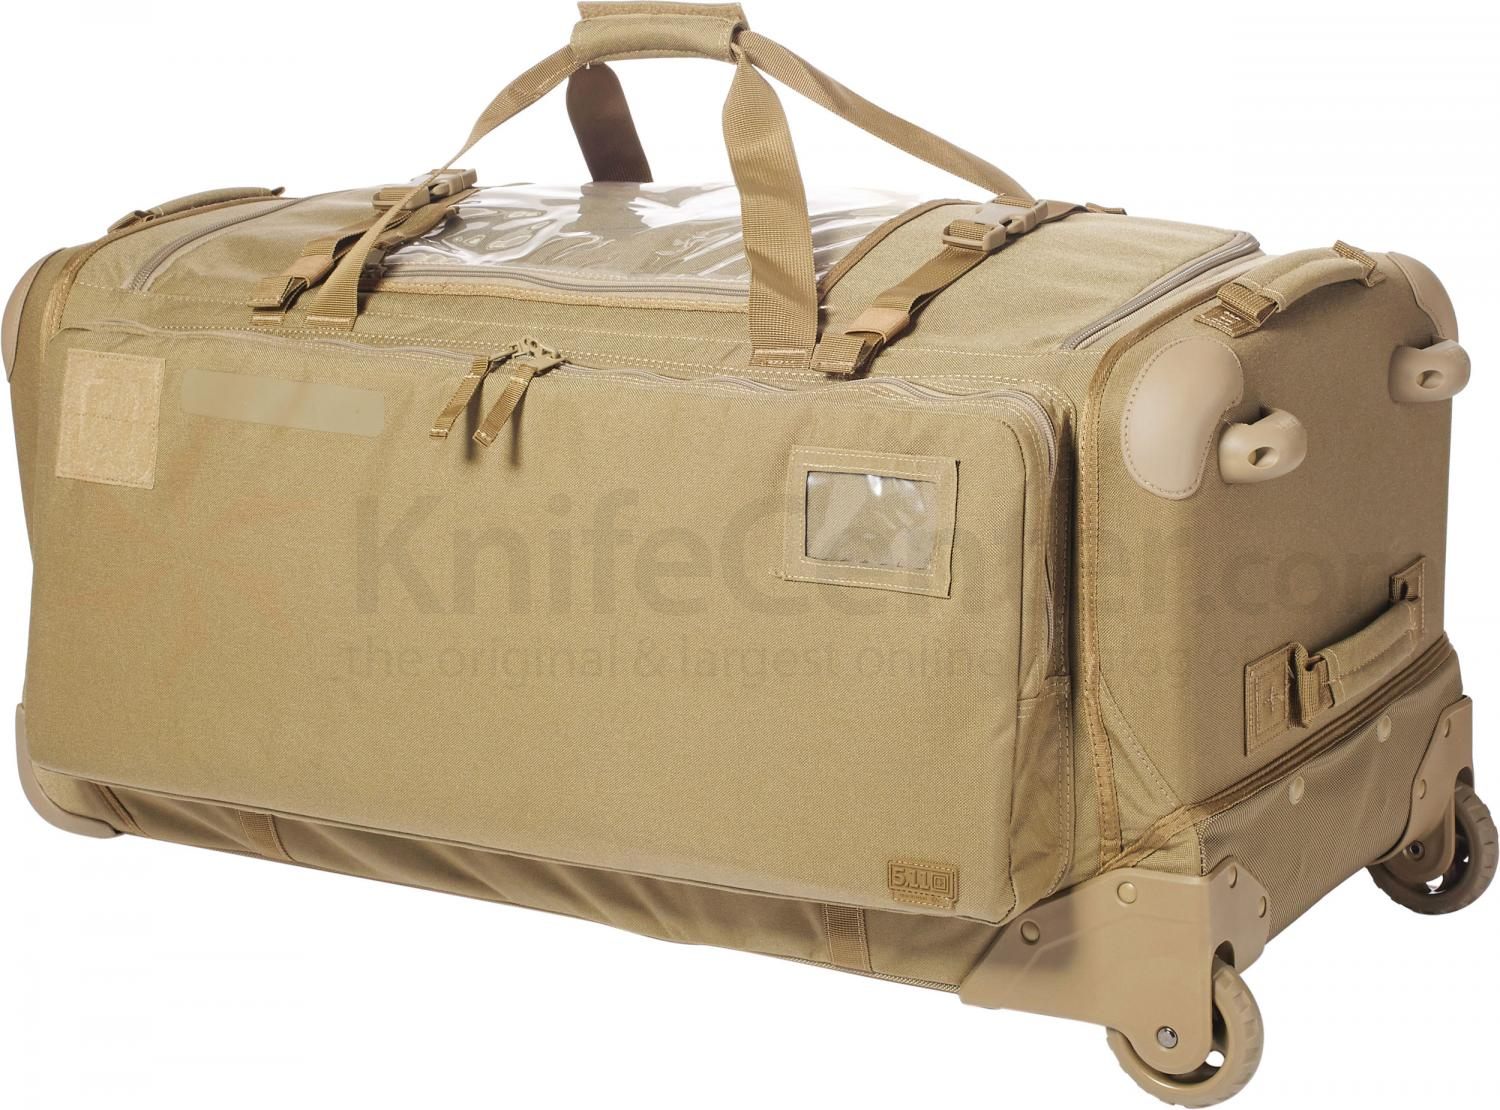 self sharpening kitchen knives specialty stores 5.11 tactical soms 2.0 rolling duffel bag, sandstone ...